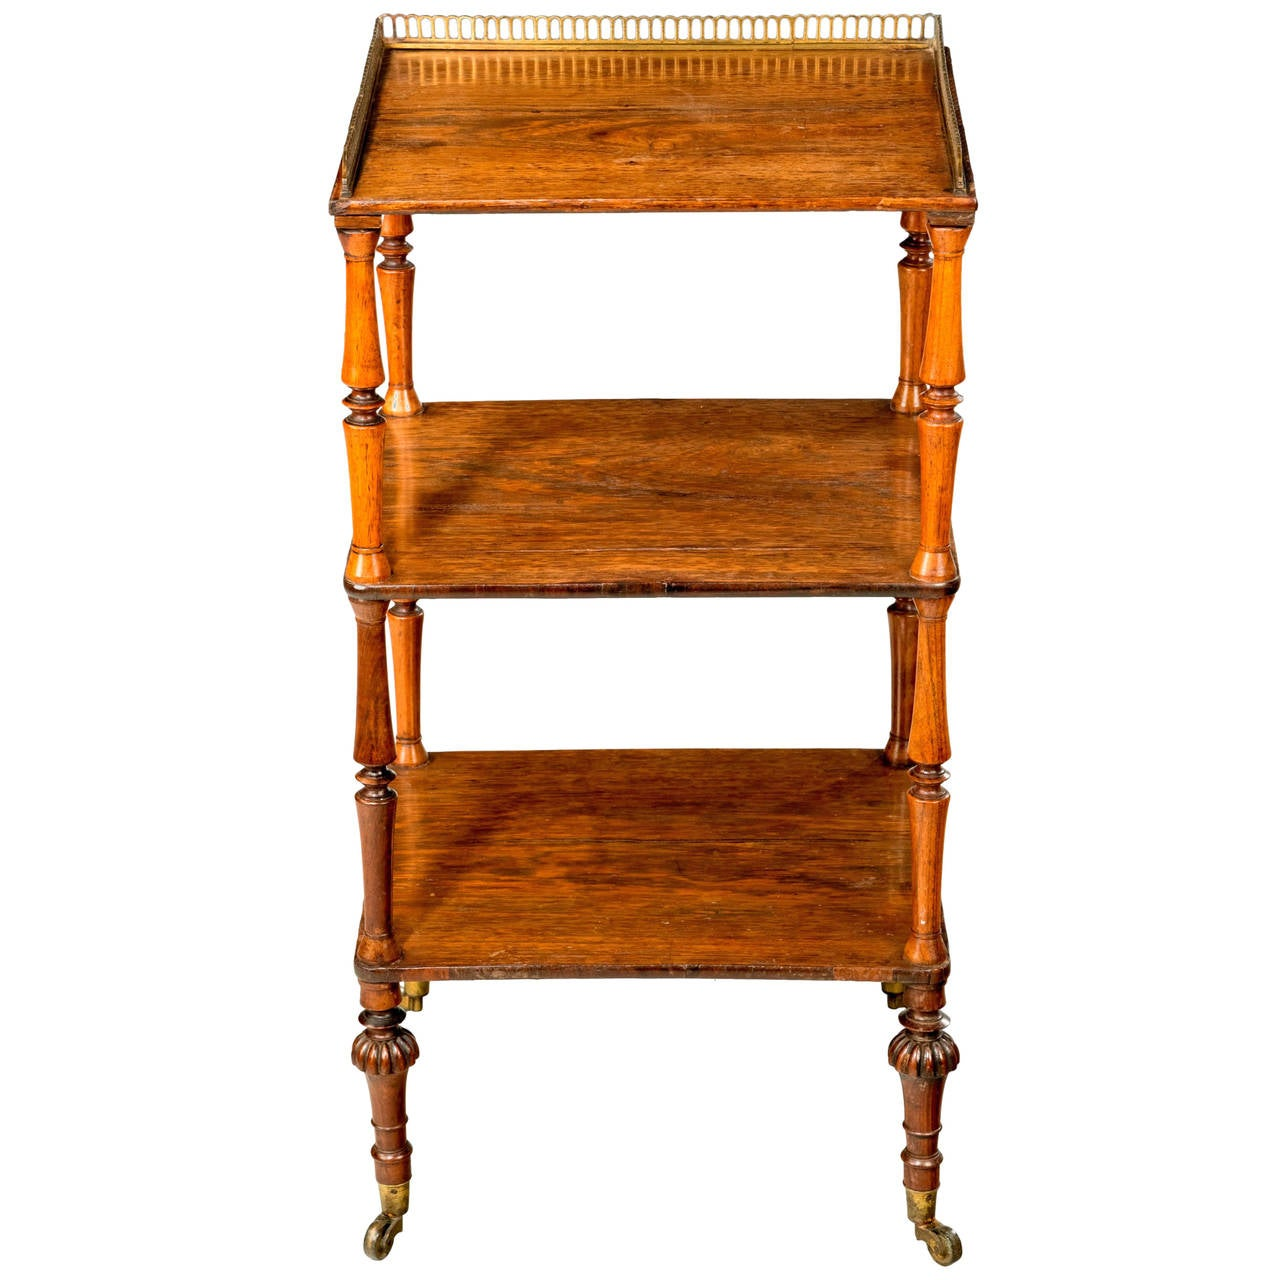 regency period rosewood etagere for sale at 1stdibs. Black Bedroom Furniture Sets. Home Design Ideas